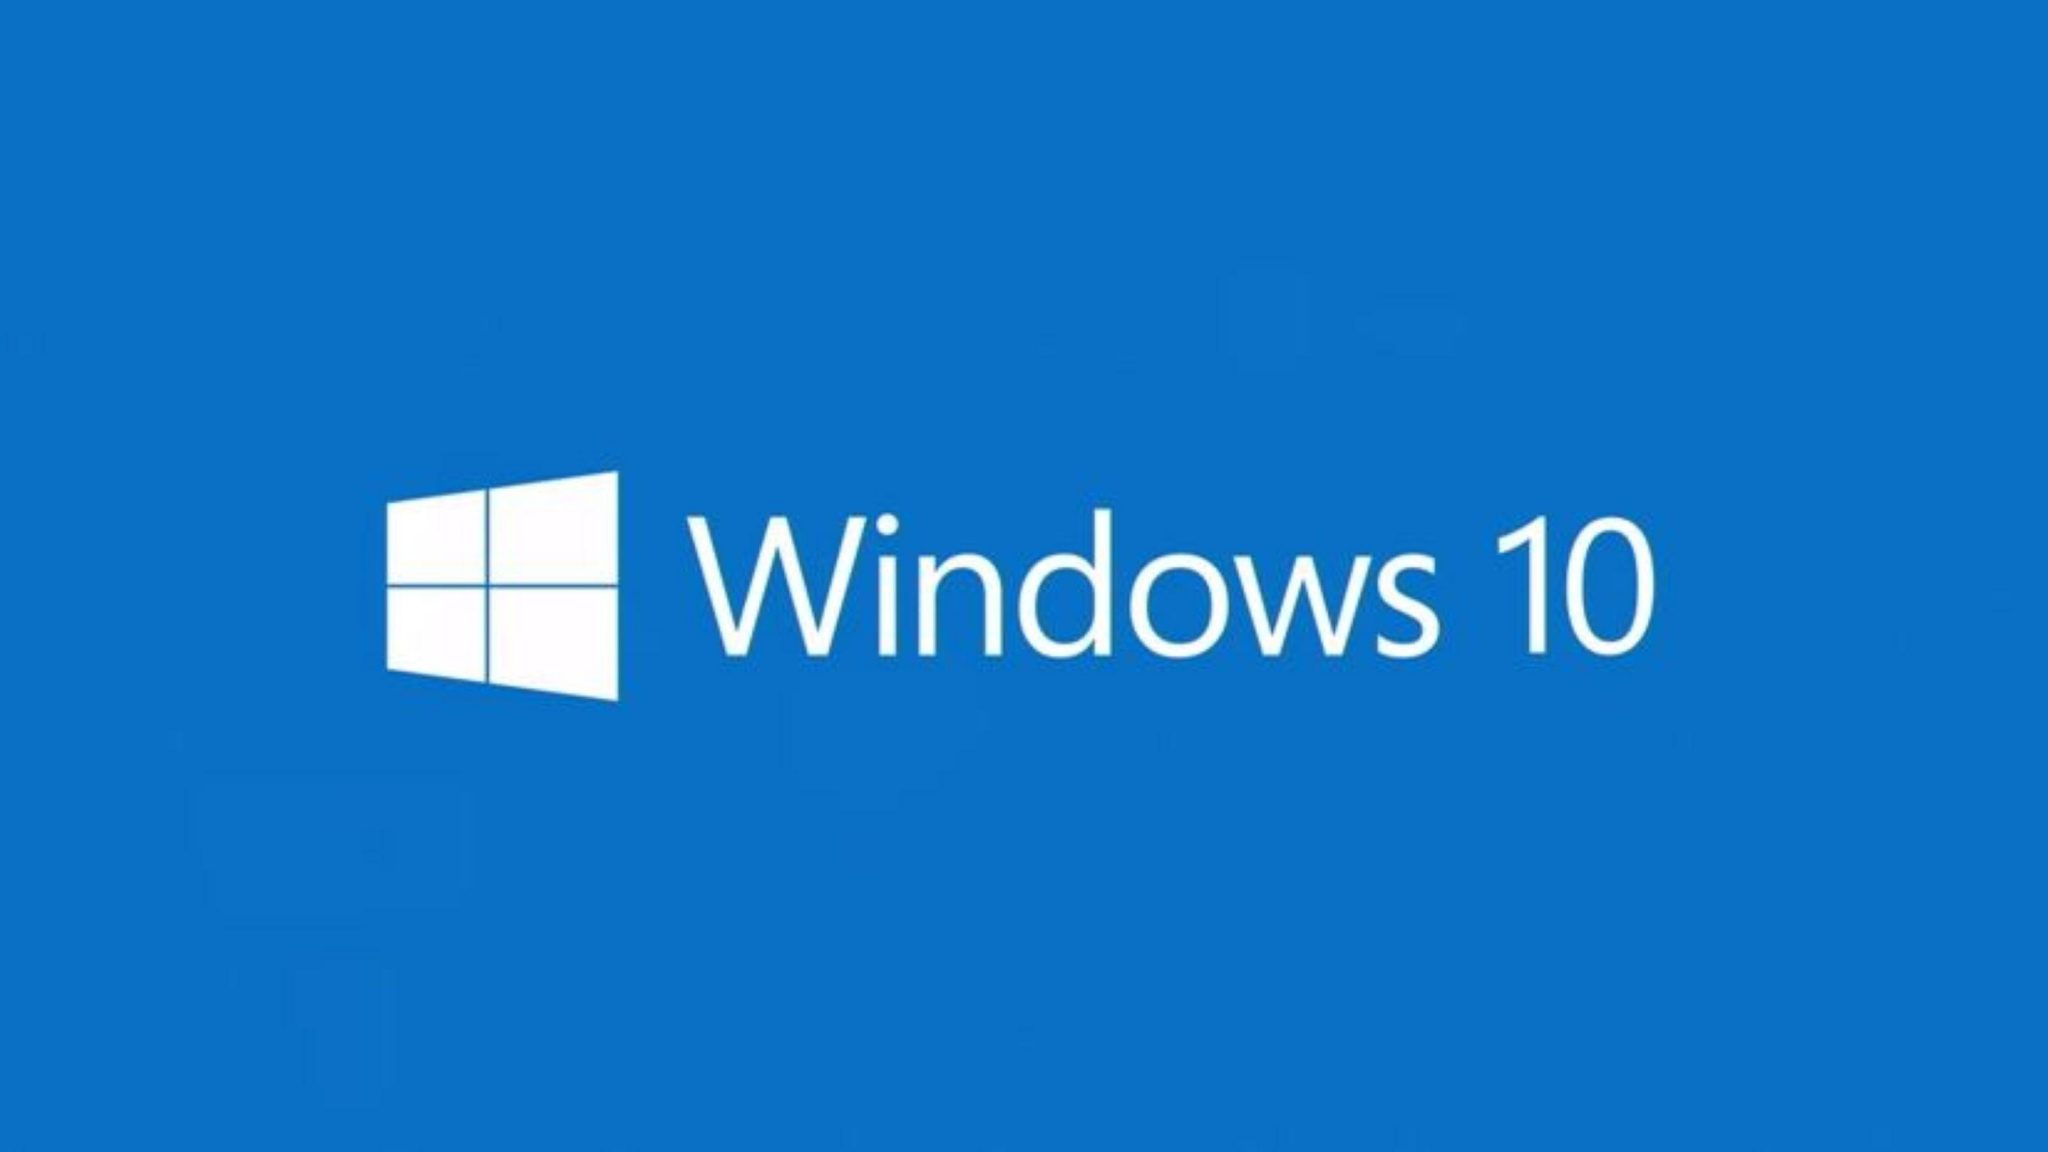 Windows 10: Complete Details of Who Can Do Free Upgrade